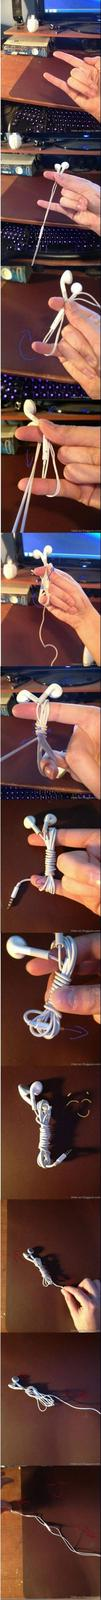 The solution for your headphones...